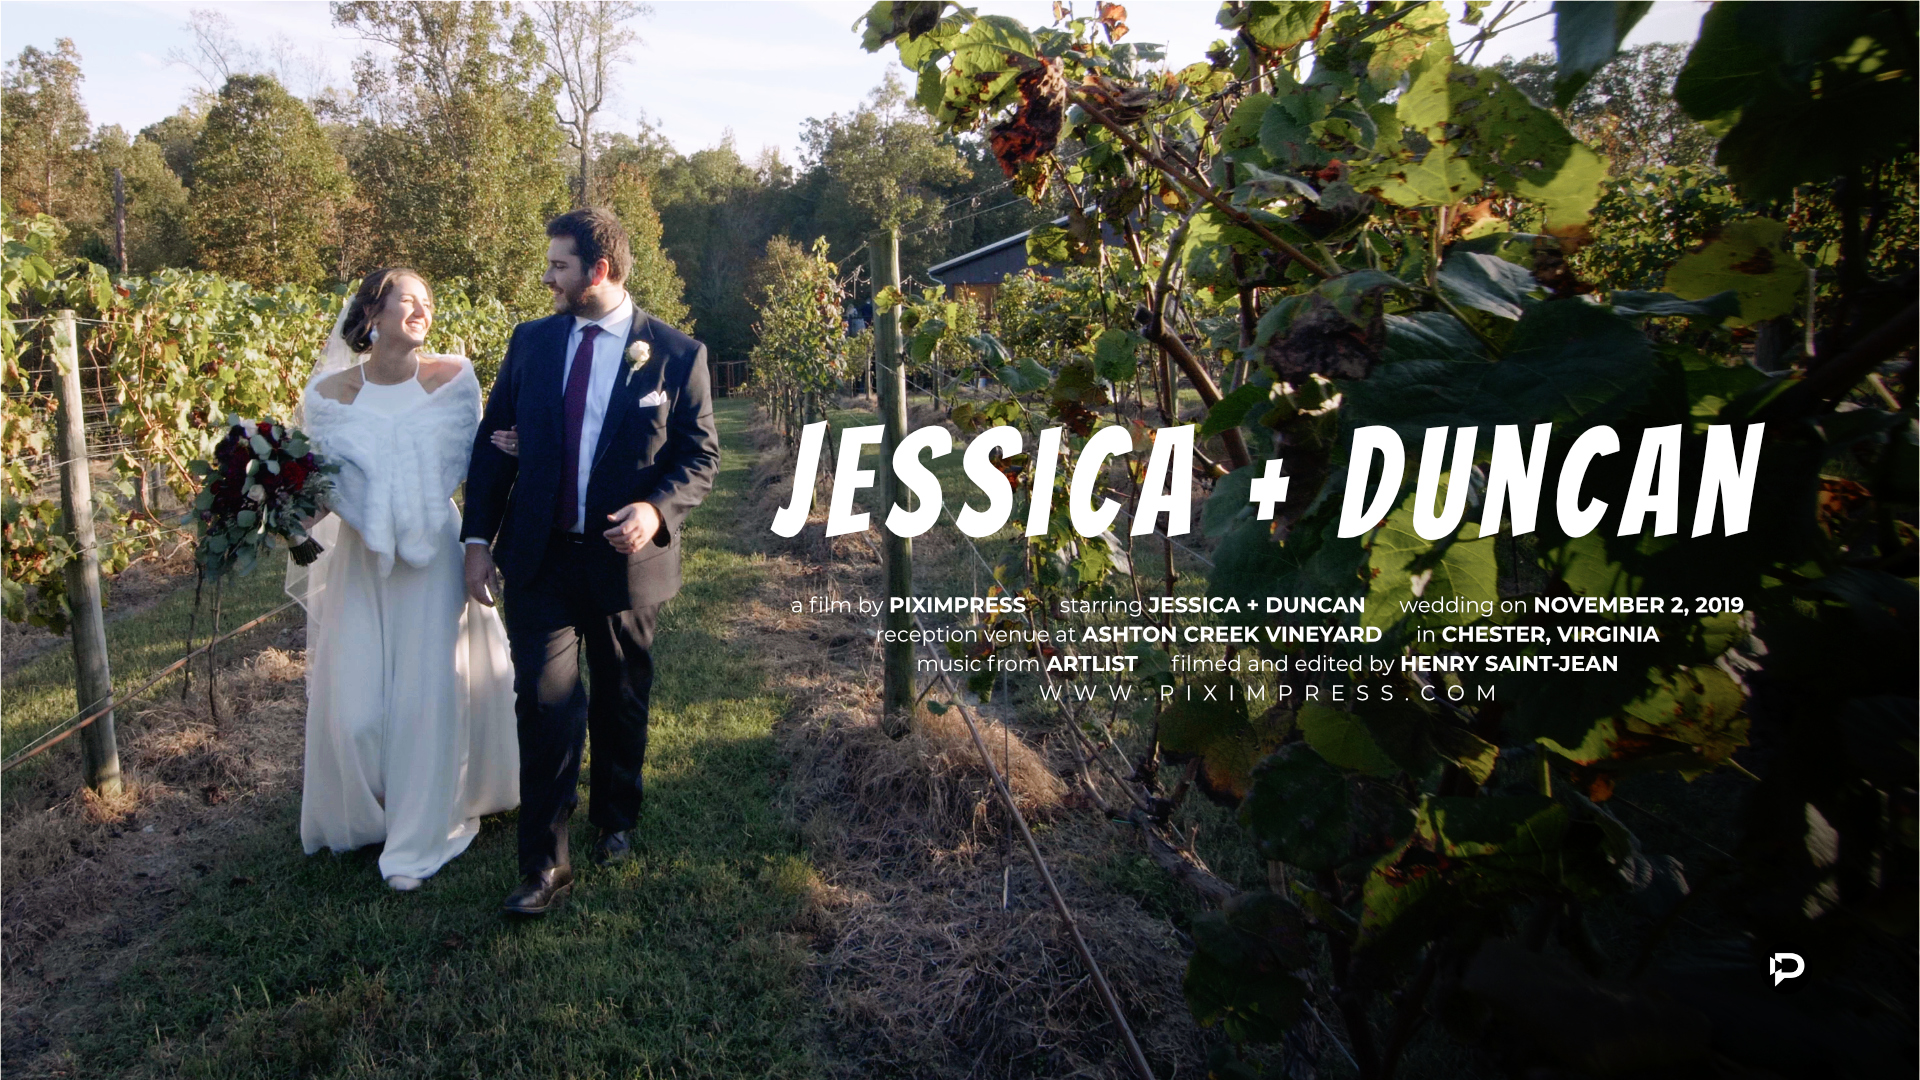 Jessica + Duncan | Chester, Virginia | Ashton Creek